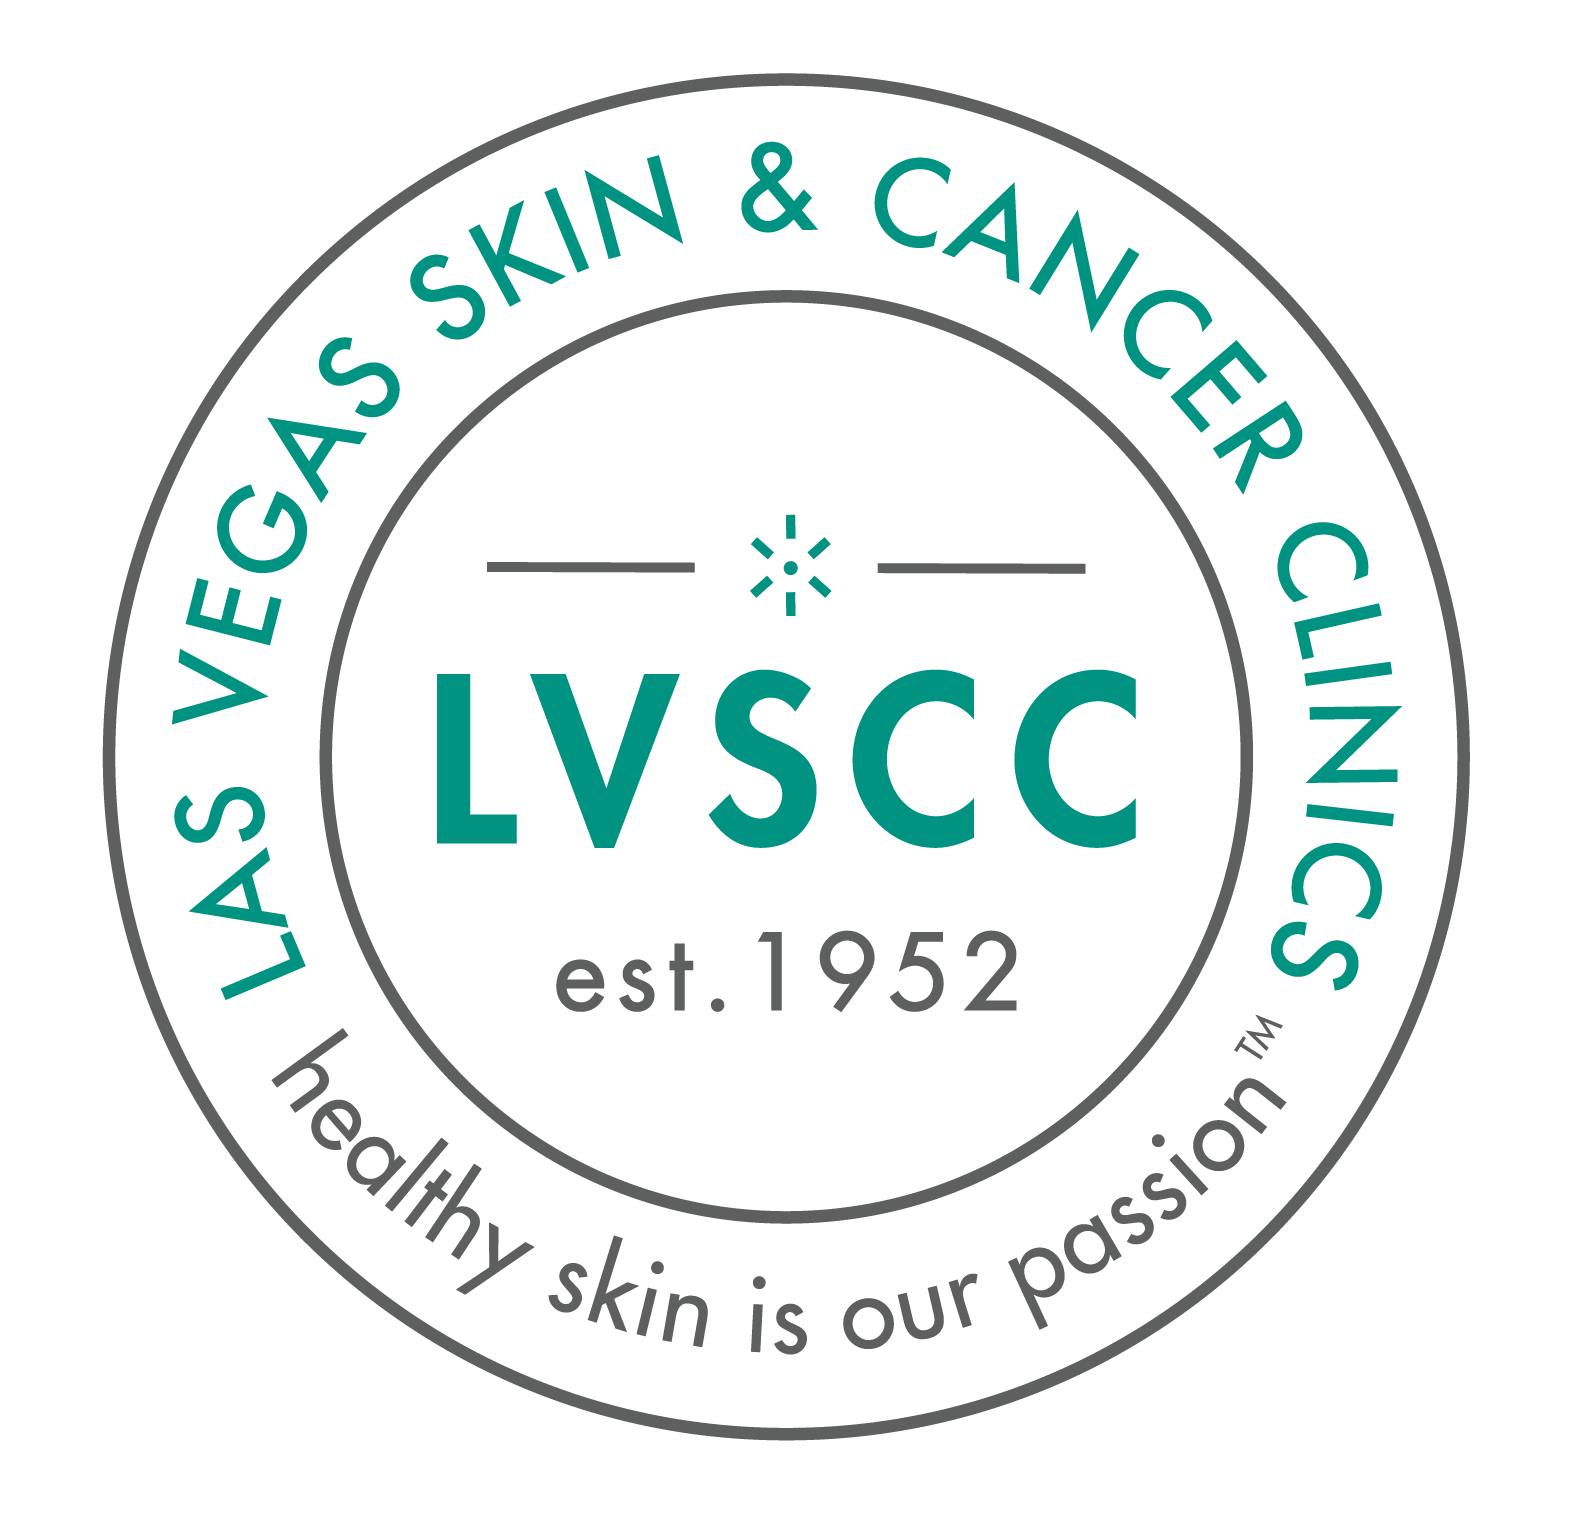 Las Vegas Skin & Cancer Seven Hills, a Top Henderson Dermatologist in NV Announces Expanded Hours